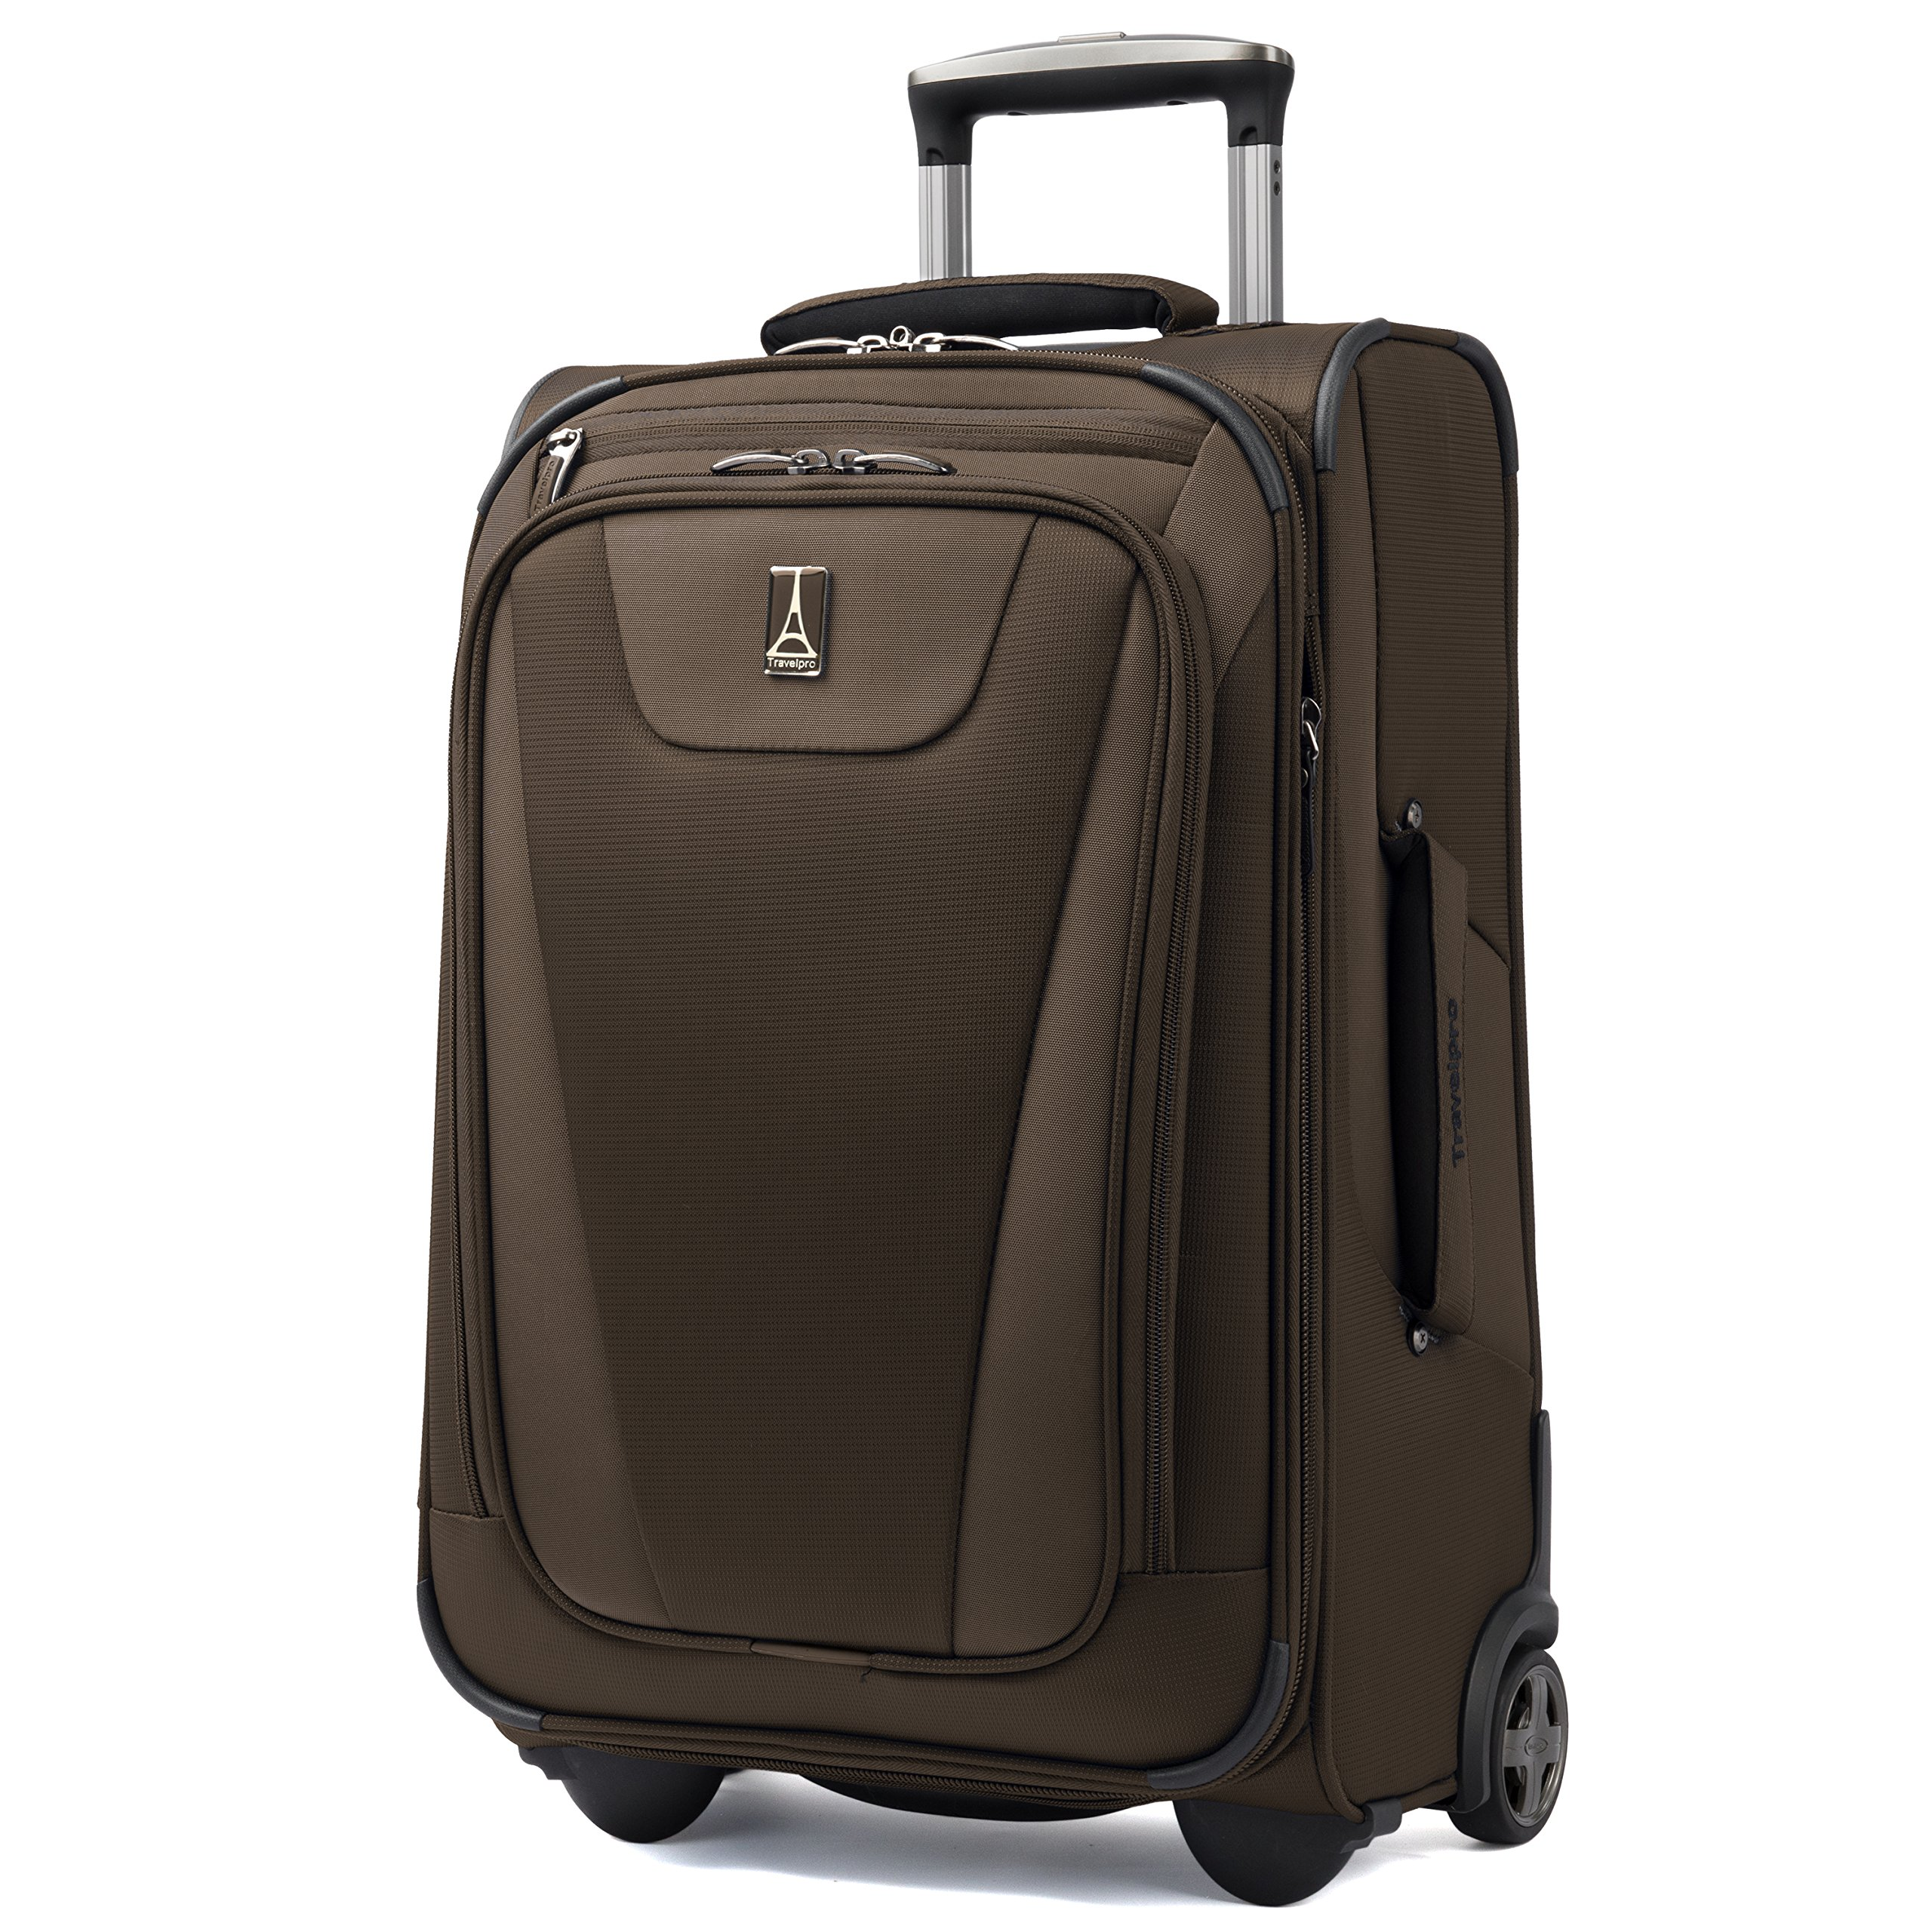 Travelpro Maxlite 4 Expandable Rollaboard 22 Inch Suitcase (Mocha)